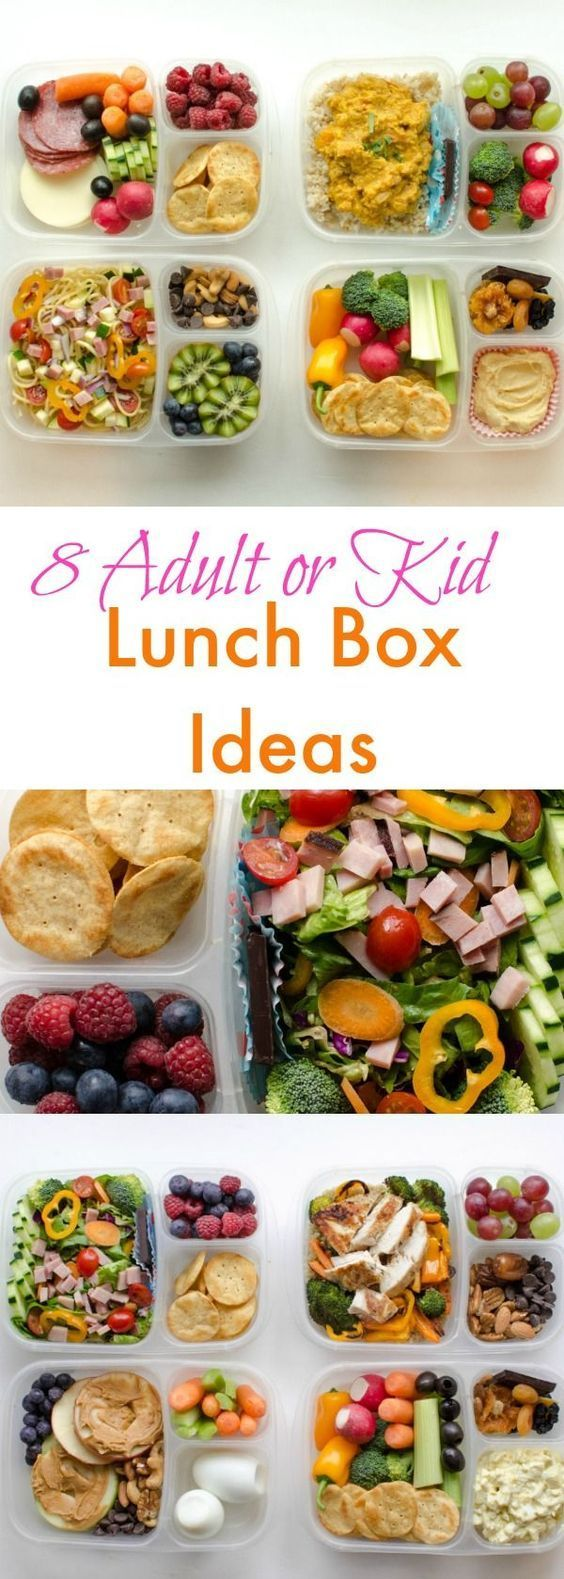 8 Wholesome Lunch-Box Ideas for Adults or Kids! packed in #easylunchboxes containers #lunch